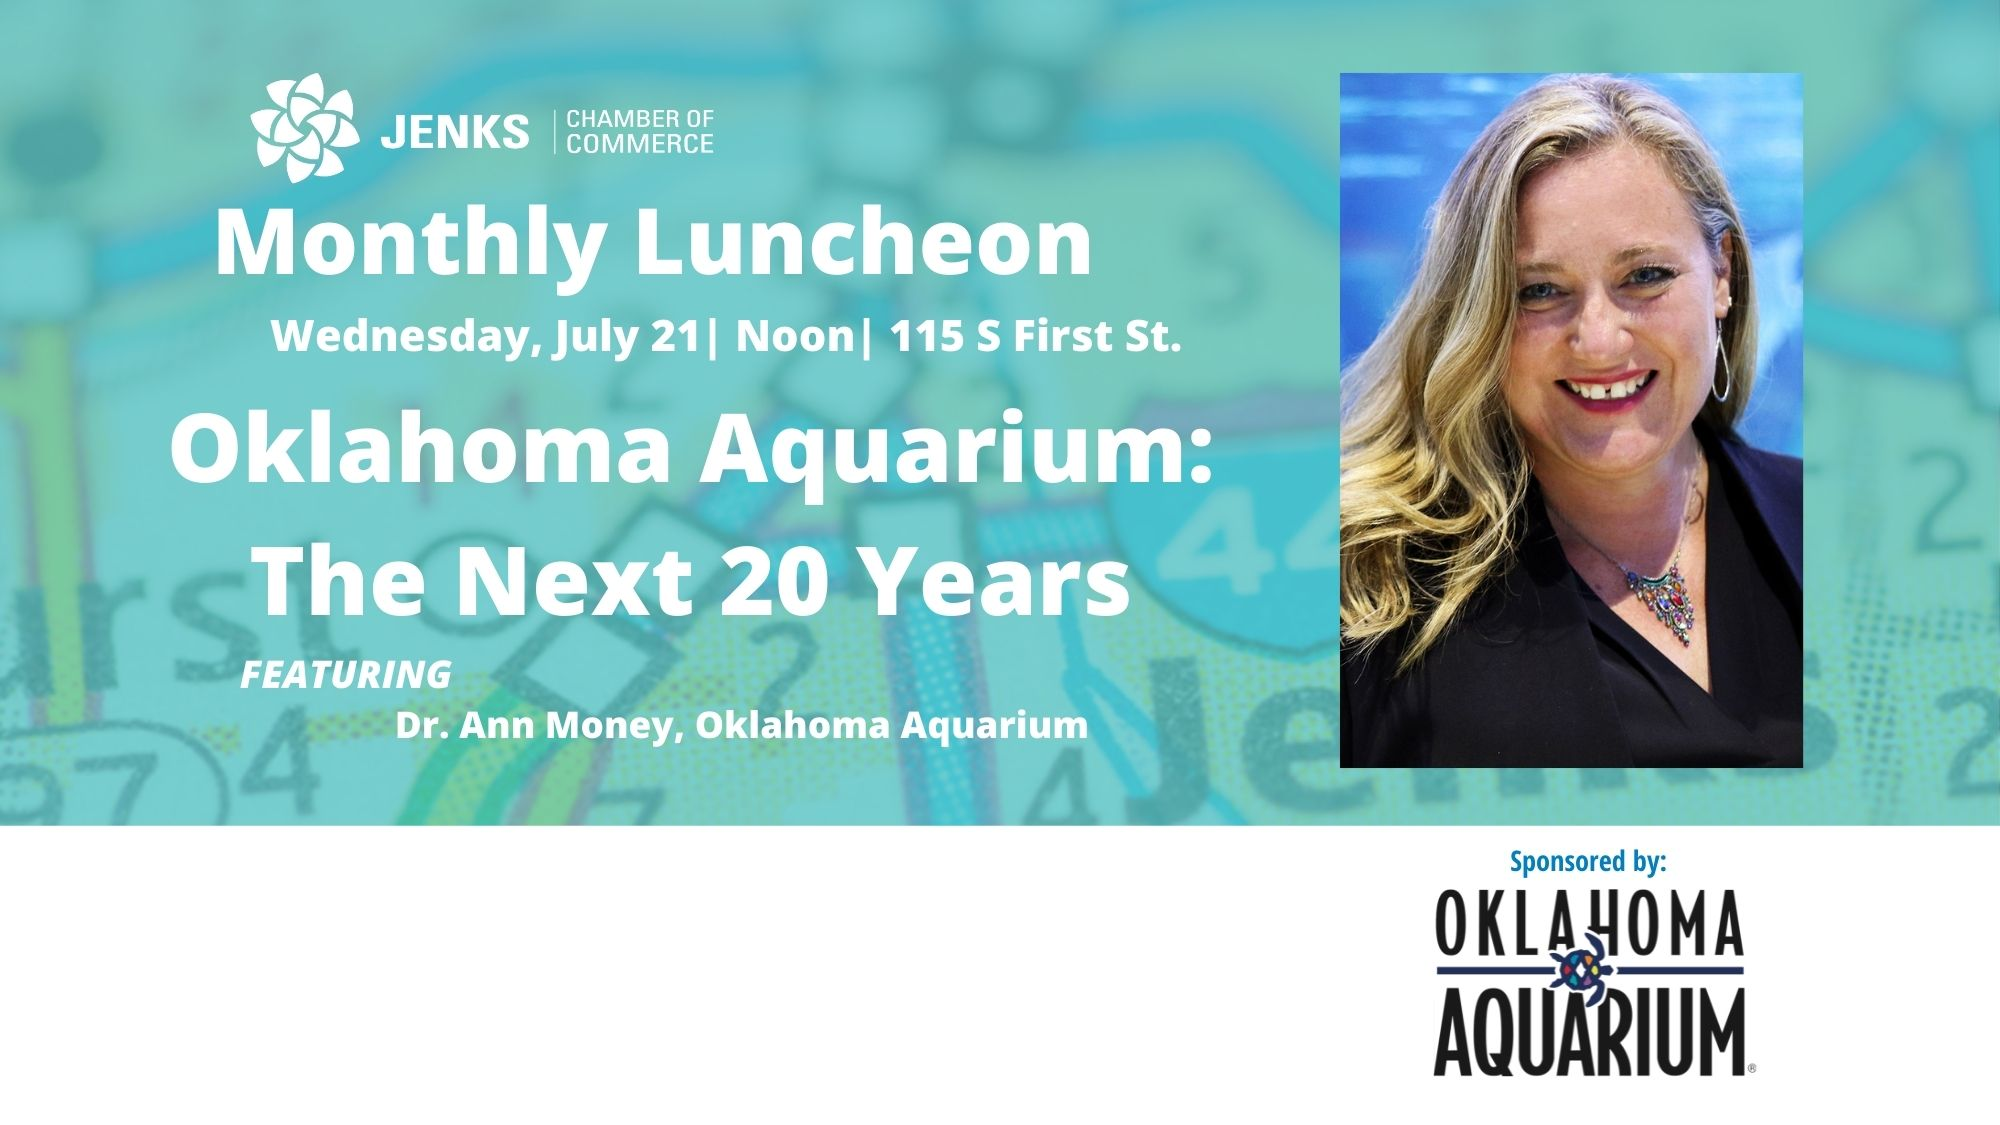 A graphic for the July 21 luncheon, featuring Dr. Ann Money of the Oklahoma Aquarium.